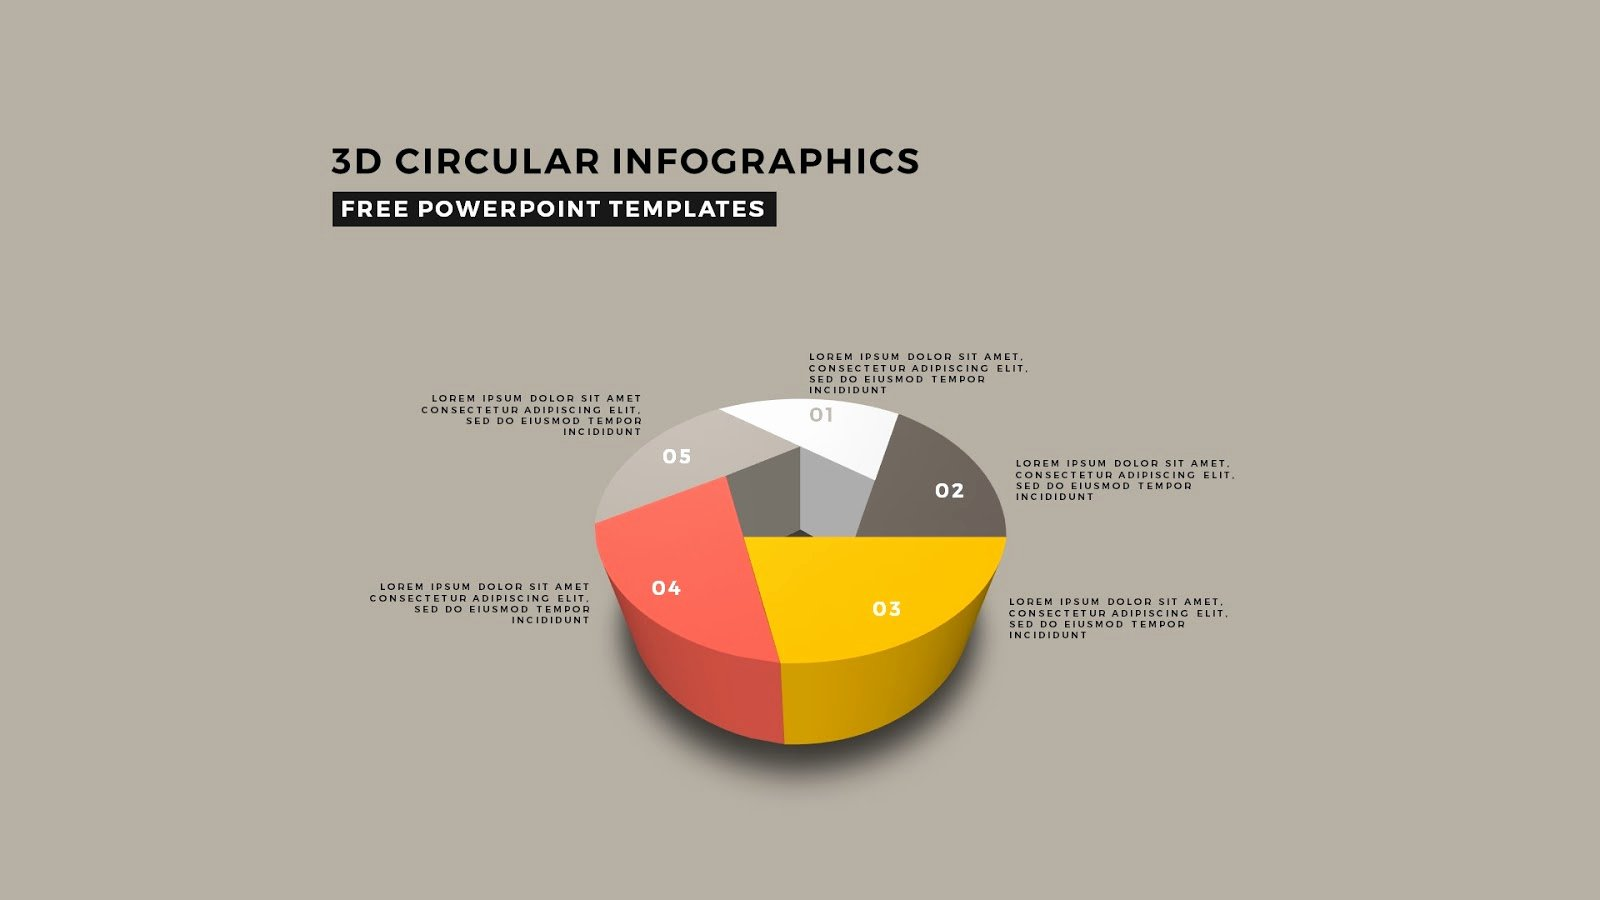 Free 3d Powerpoint Templates Luxury Perspective 3d Pie Chart Infographic Elements for